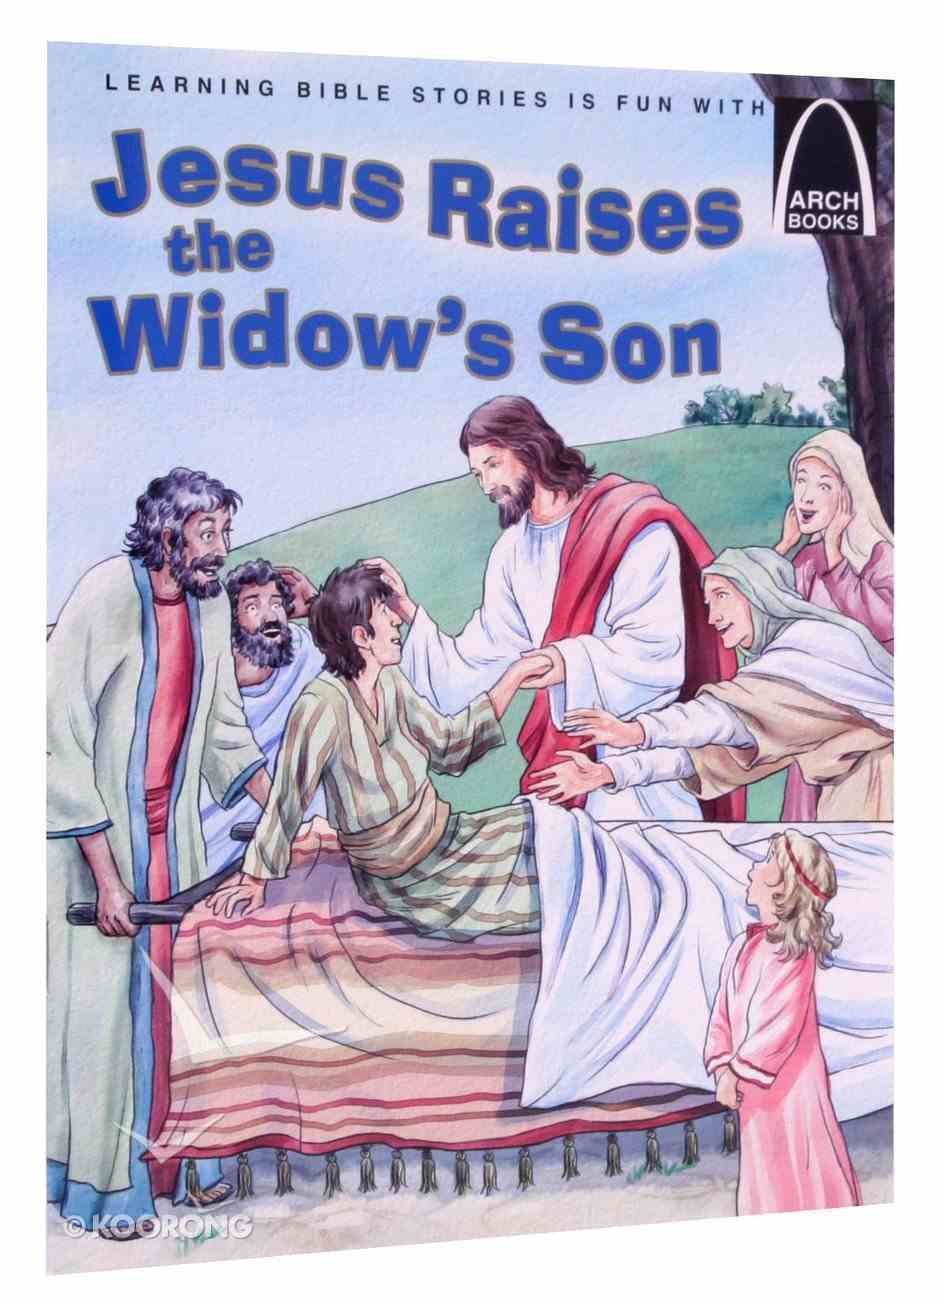 Jesus Raises the Widow's Son (Arch Books Series) Paperback